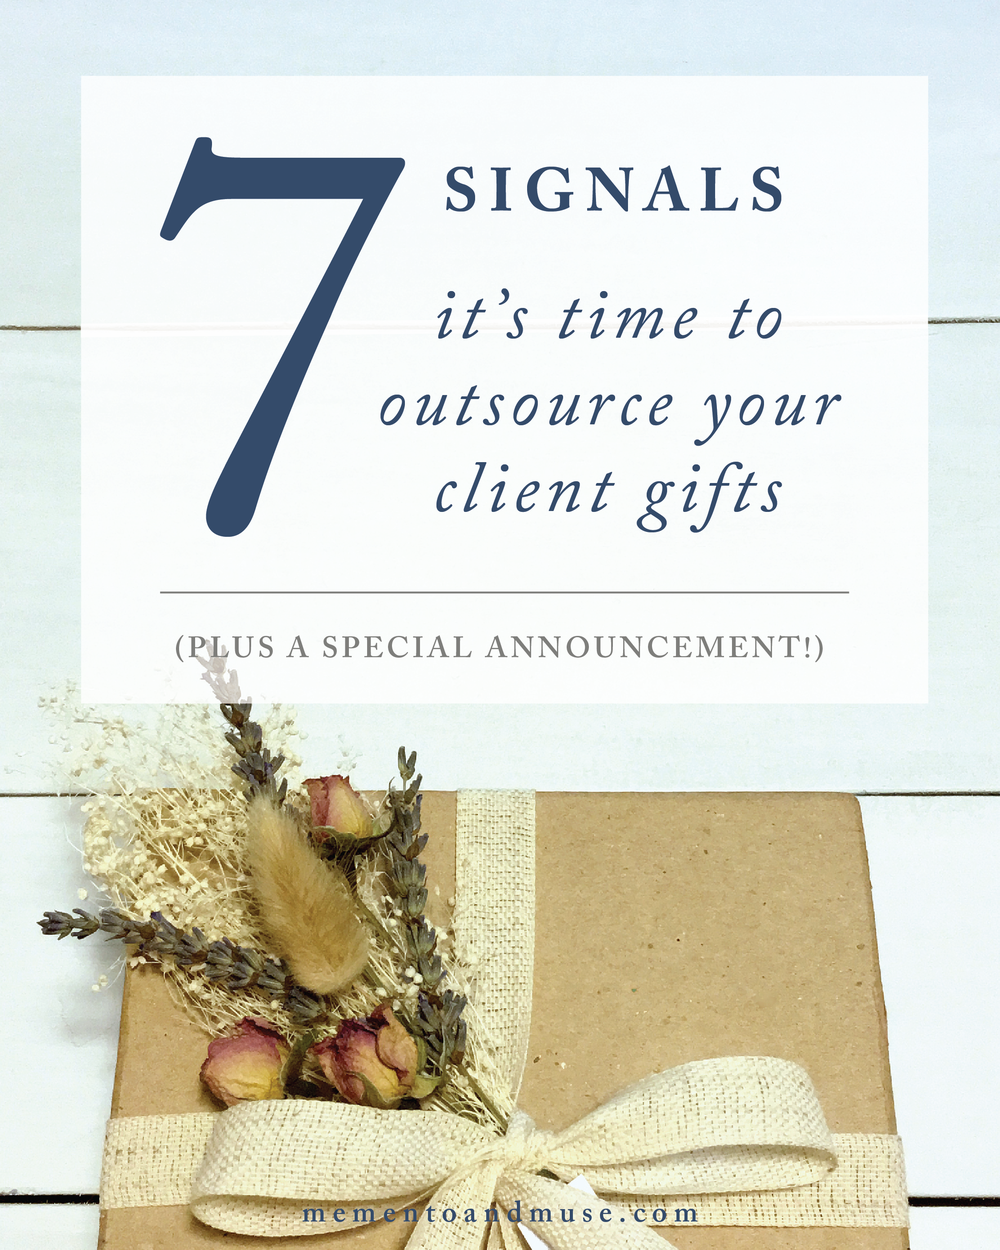 7SignalsItsTimeToOutsourceYourClientGifts